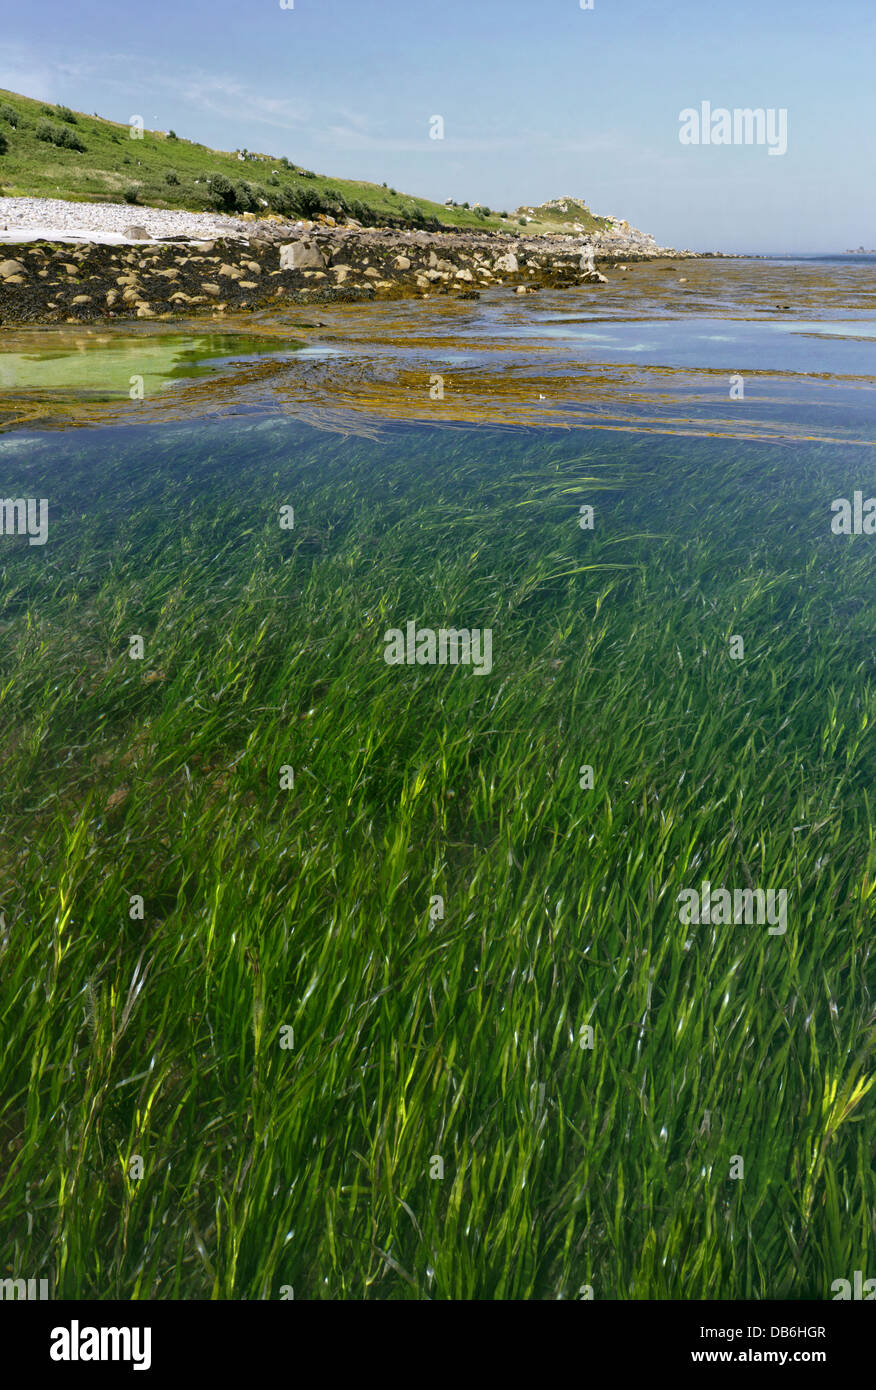 Eelgrass - Zostera marina. Eelgrass bed, off St Helen's, Isles of Scilly. - Stock Image